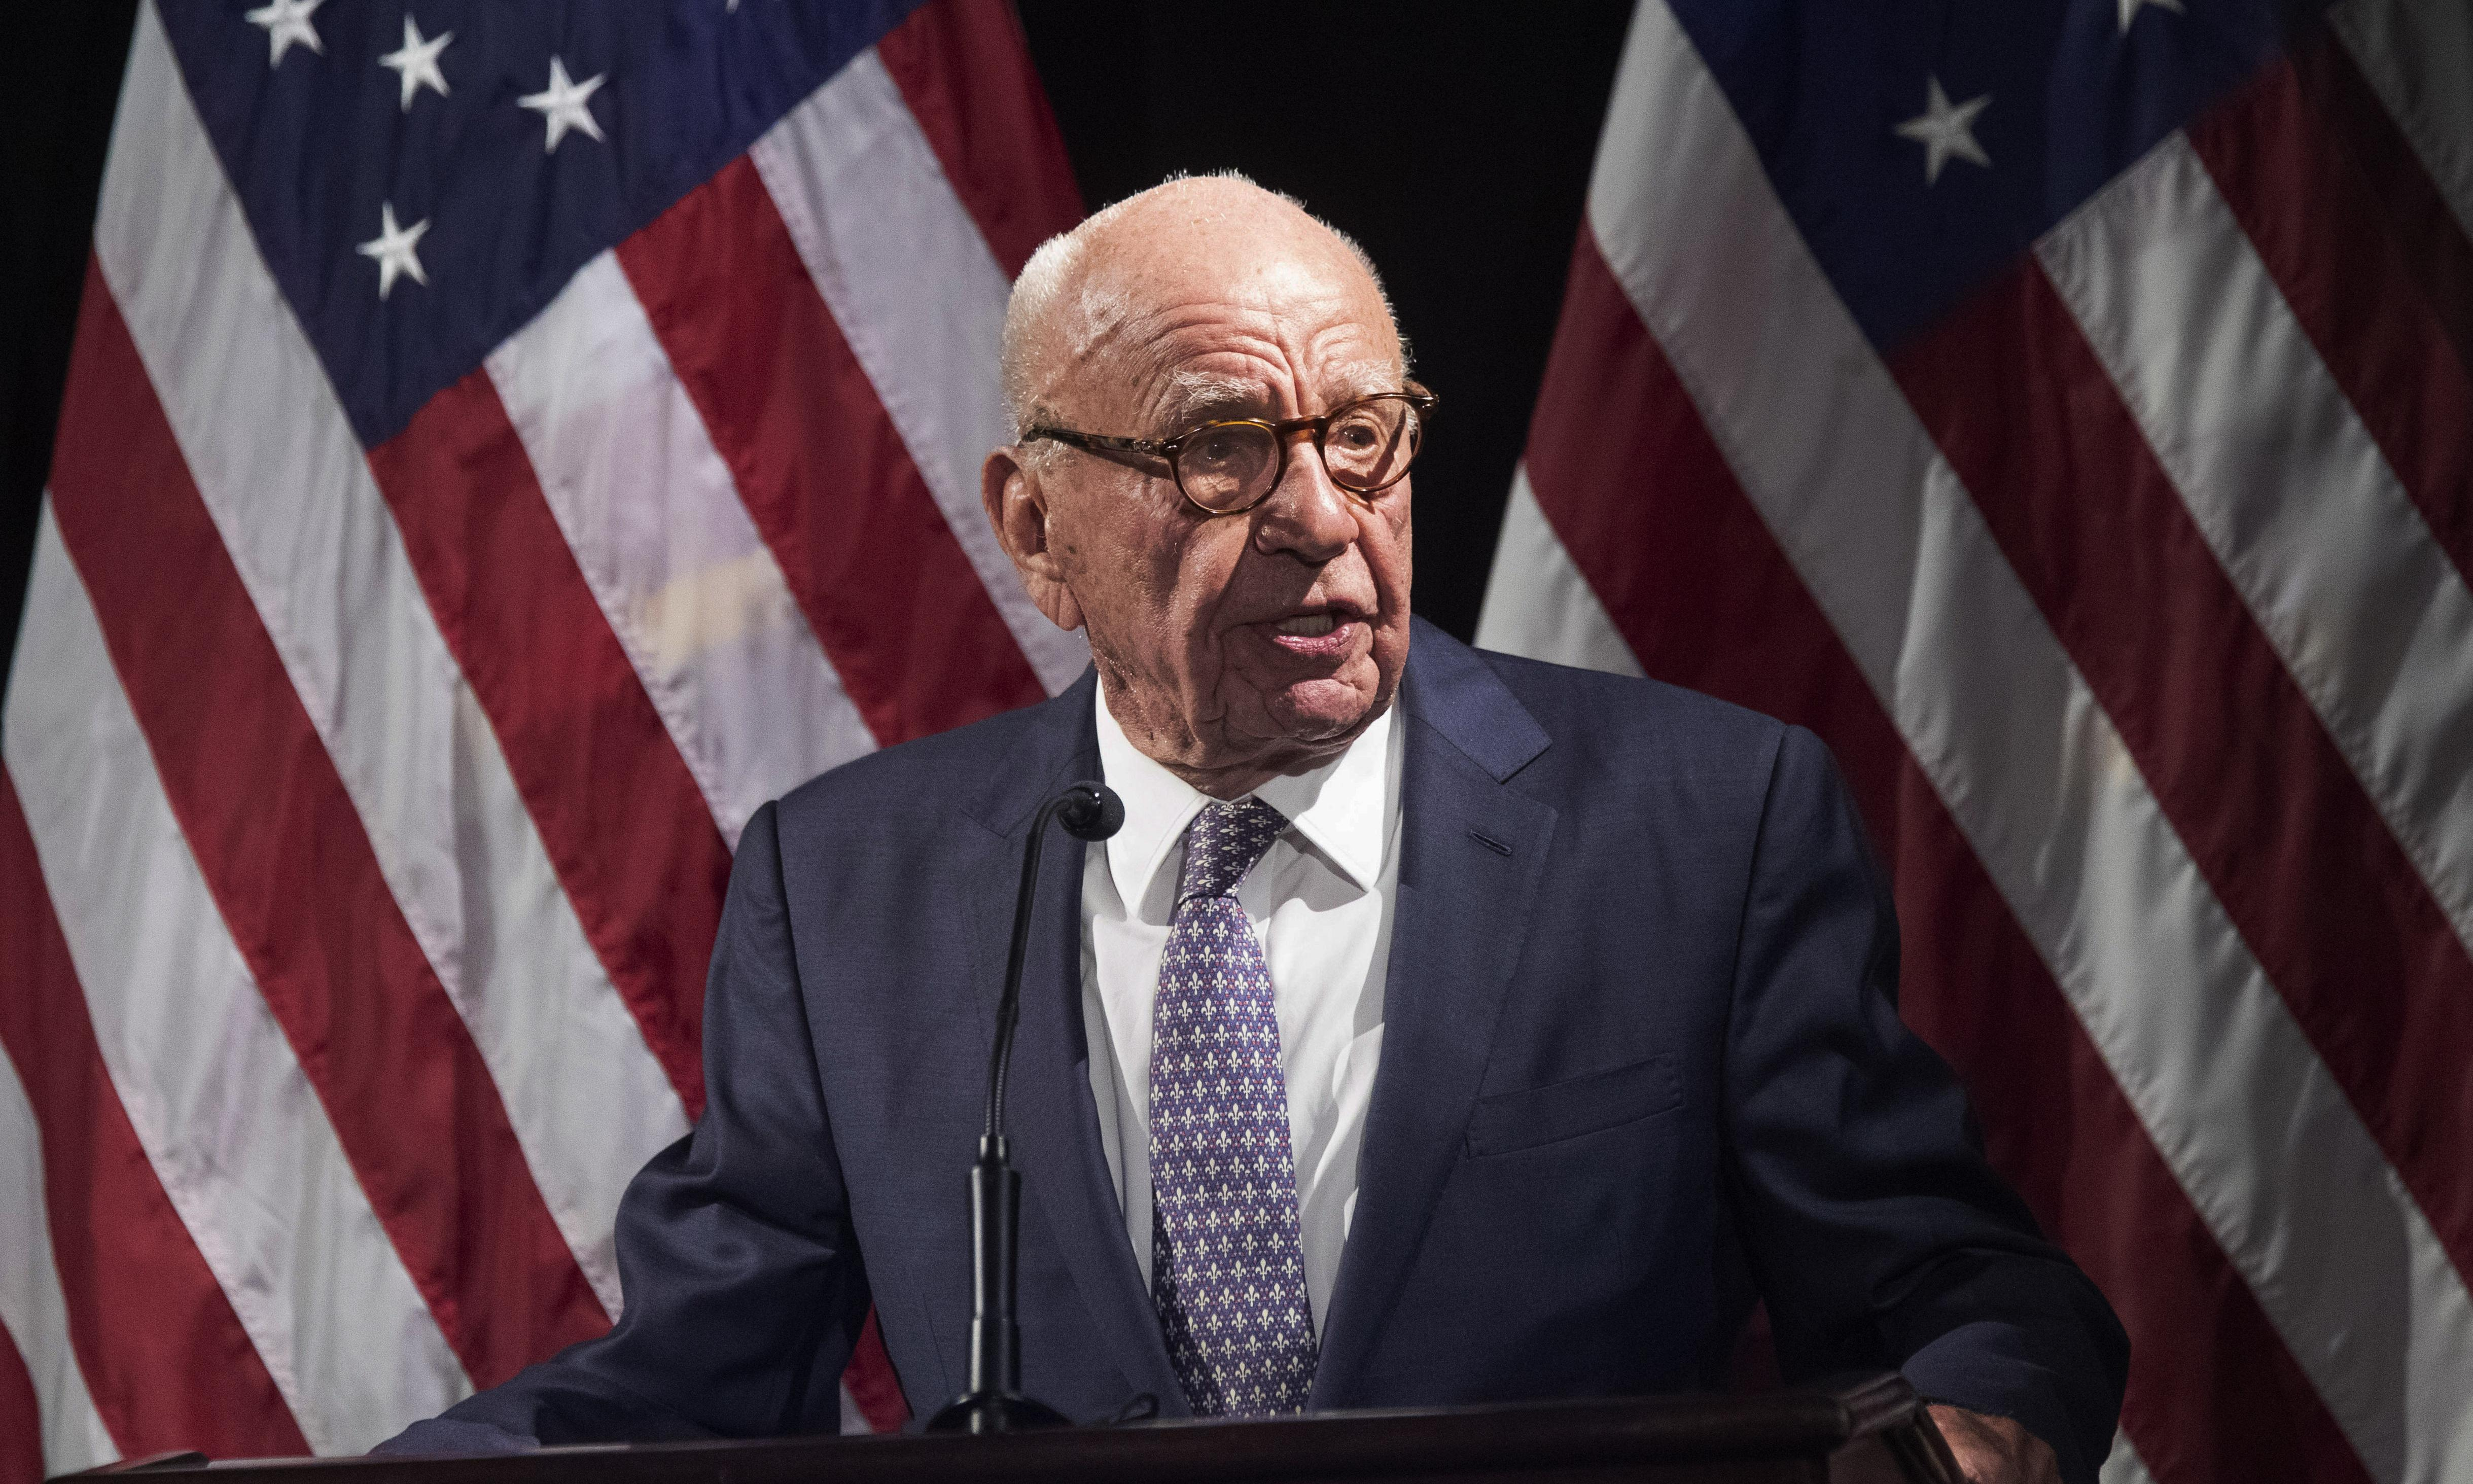 News Corp's Rupert Murdoch says 'there are no climate change deniers around'